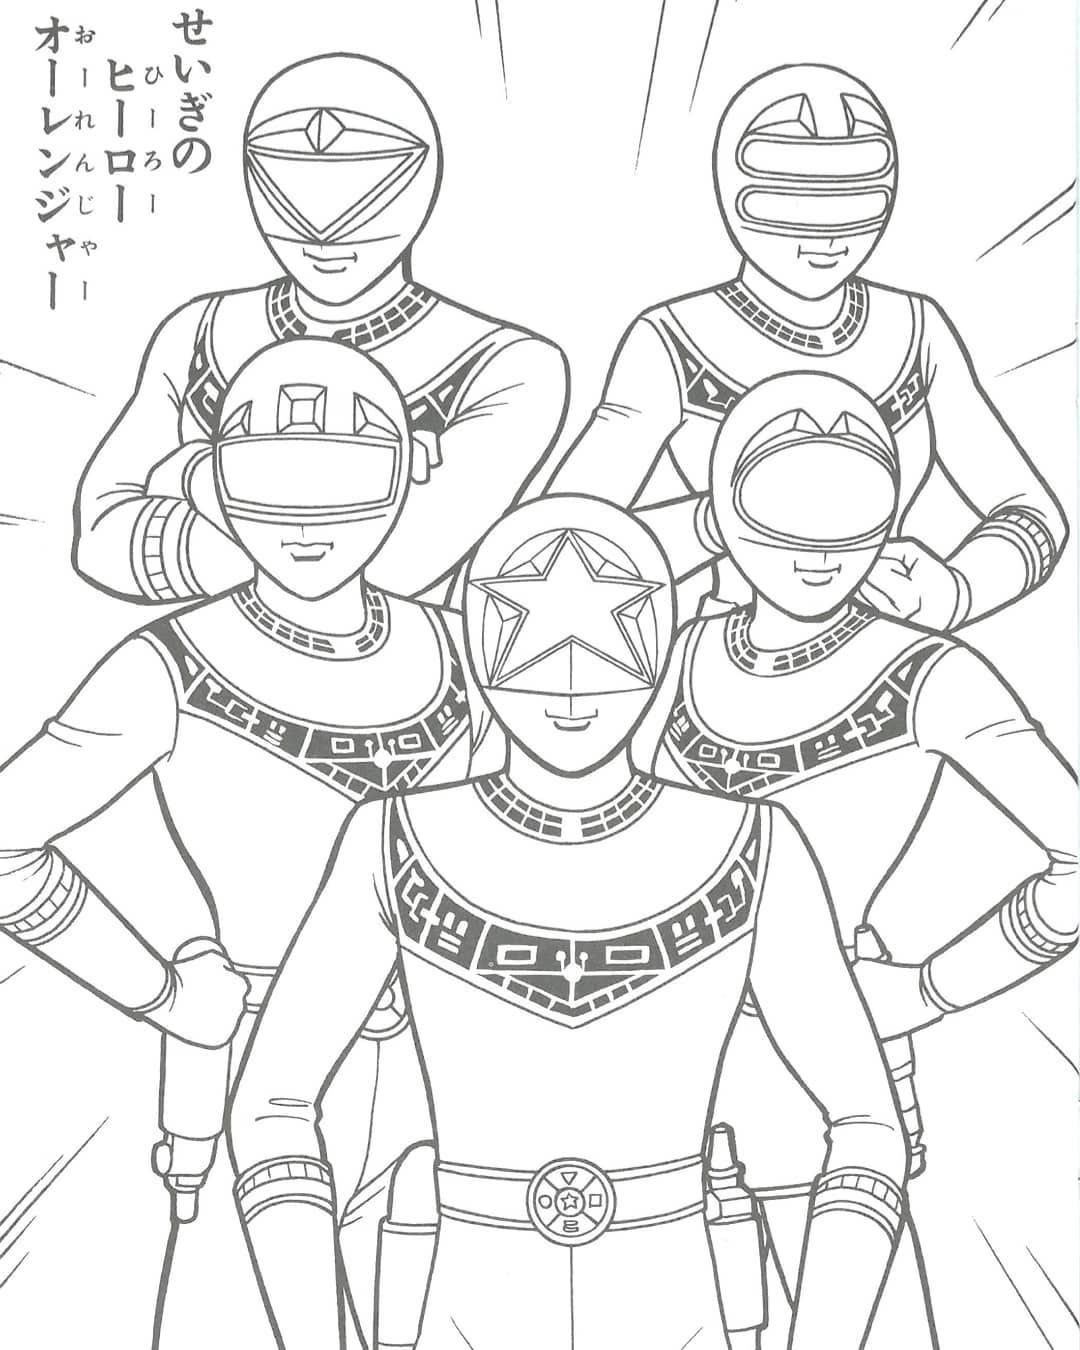 788 Likes 8 Comments Go Zeo Powerrangerstoysau On Instagram Any Artists Out There Able To Colour Desenhos Pra Colorir Desenhos Para Colorir Colorir